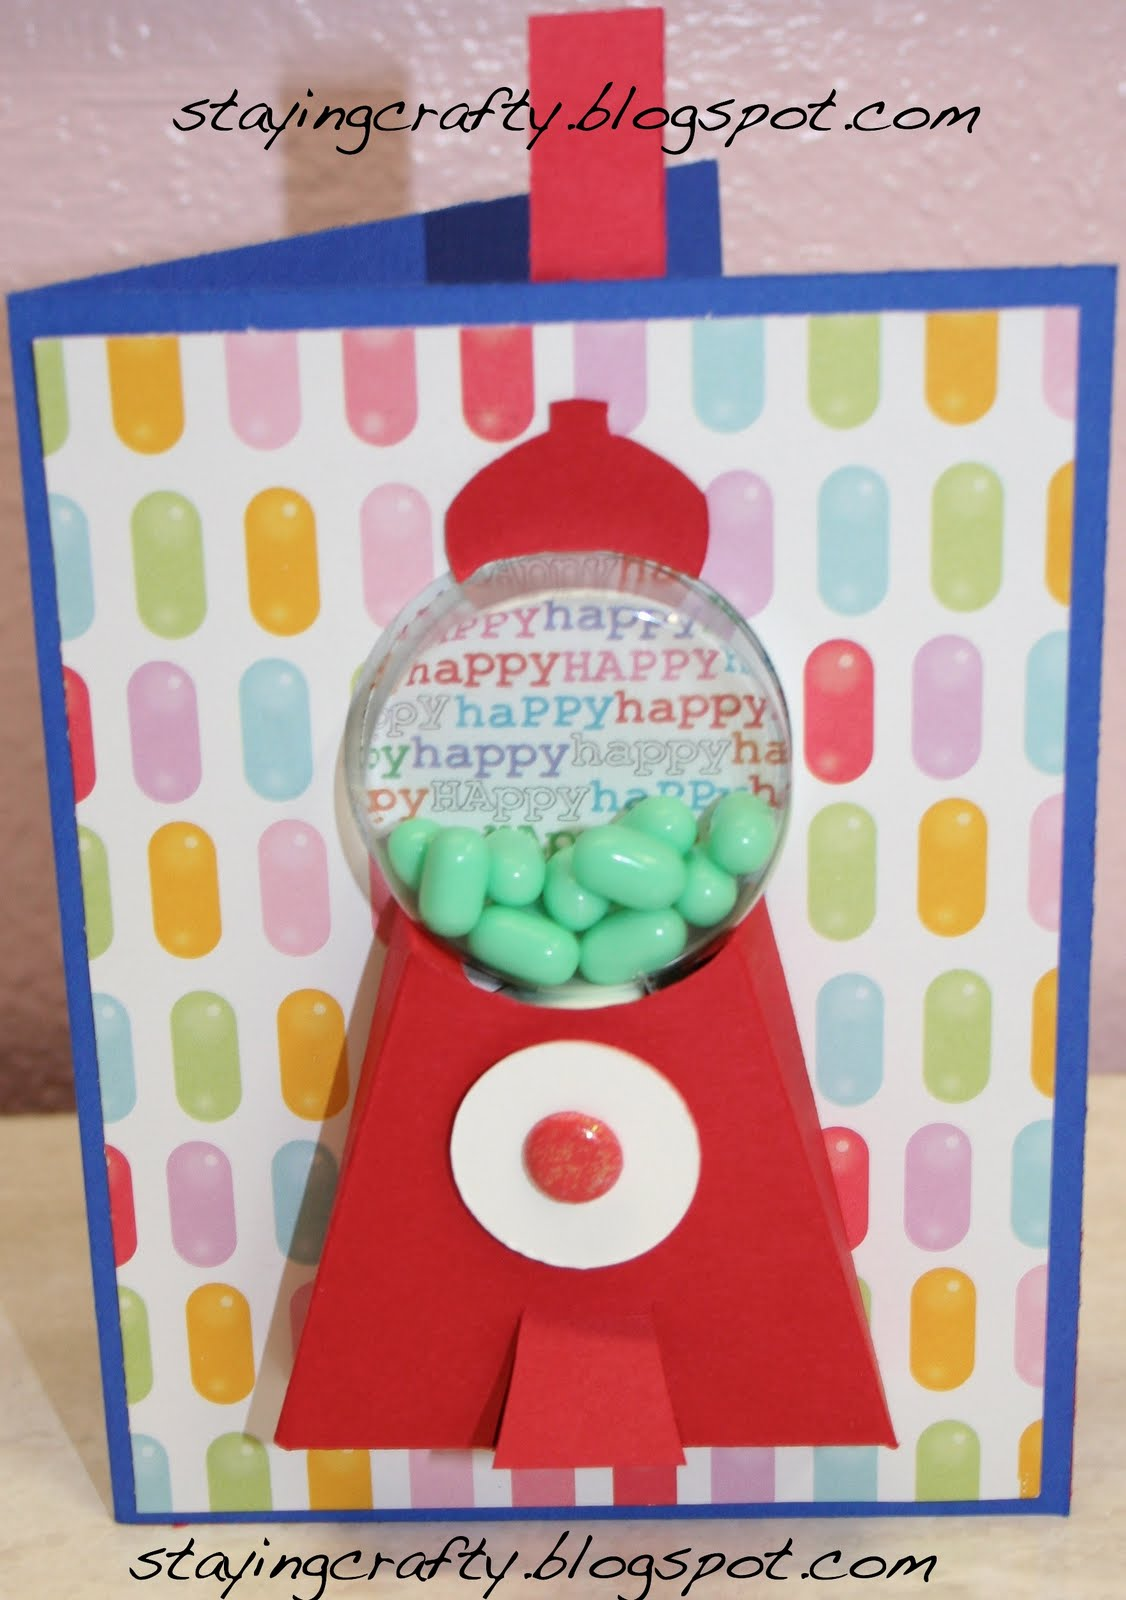 Staying crafty functional gumball machine card free template functional gumball machine card free template video instructions too pronofoot35fo Images